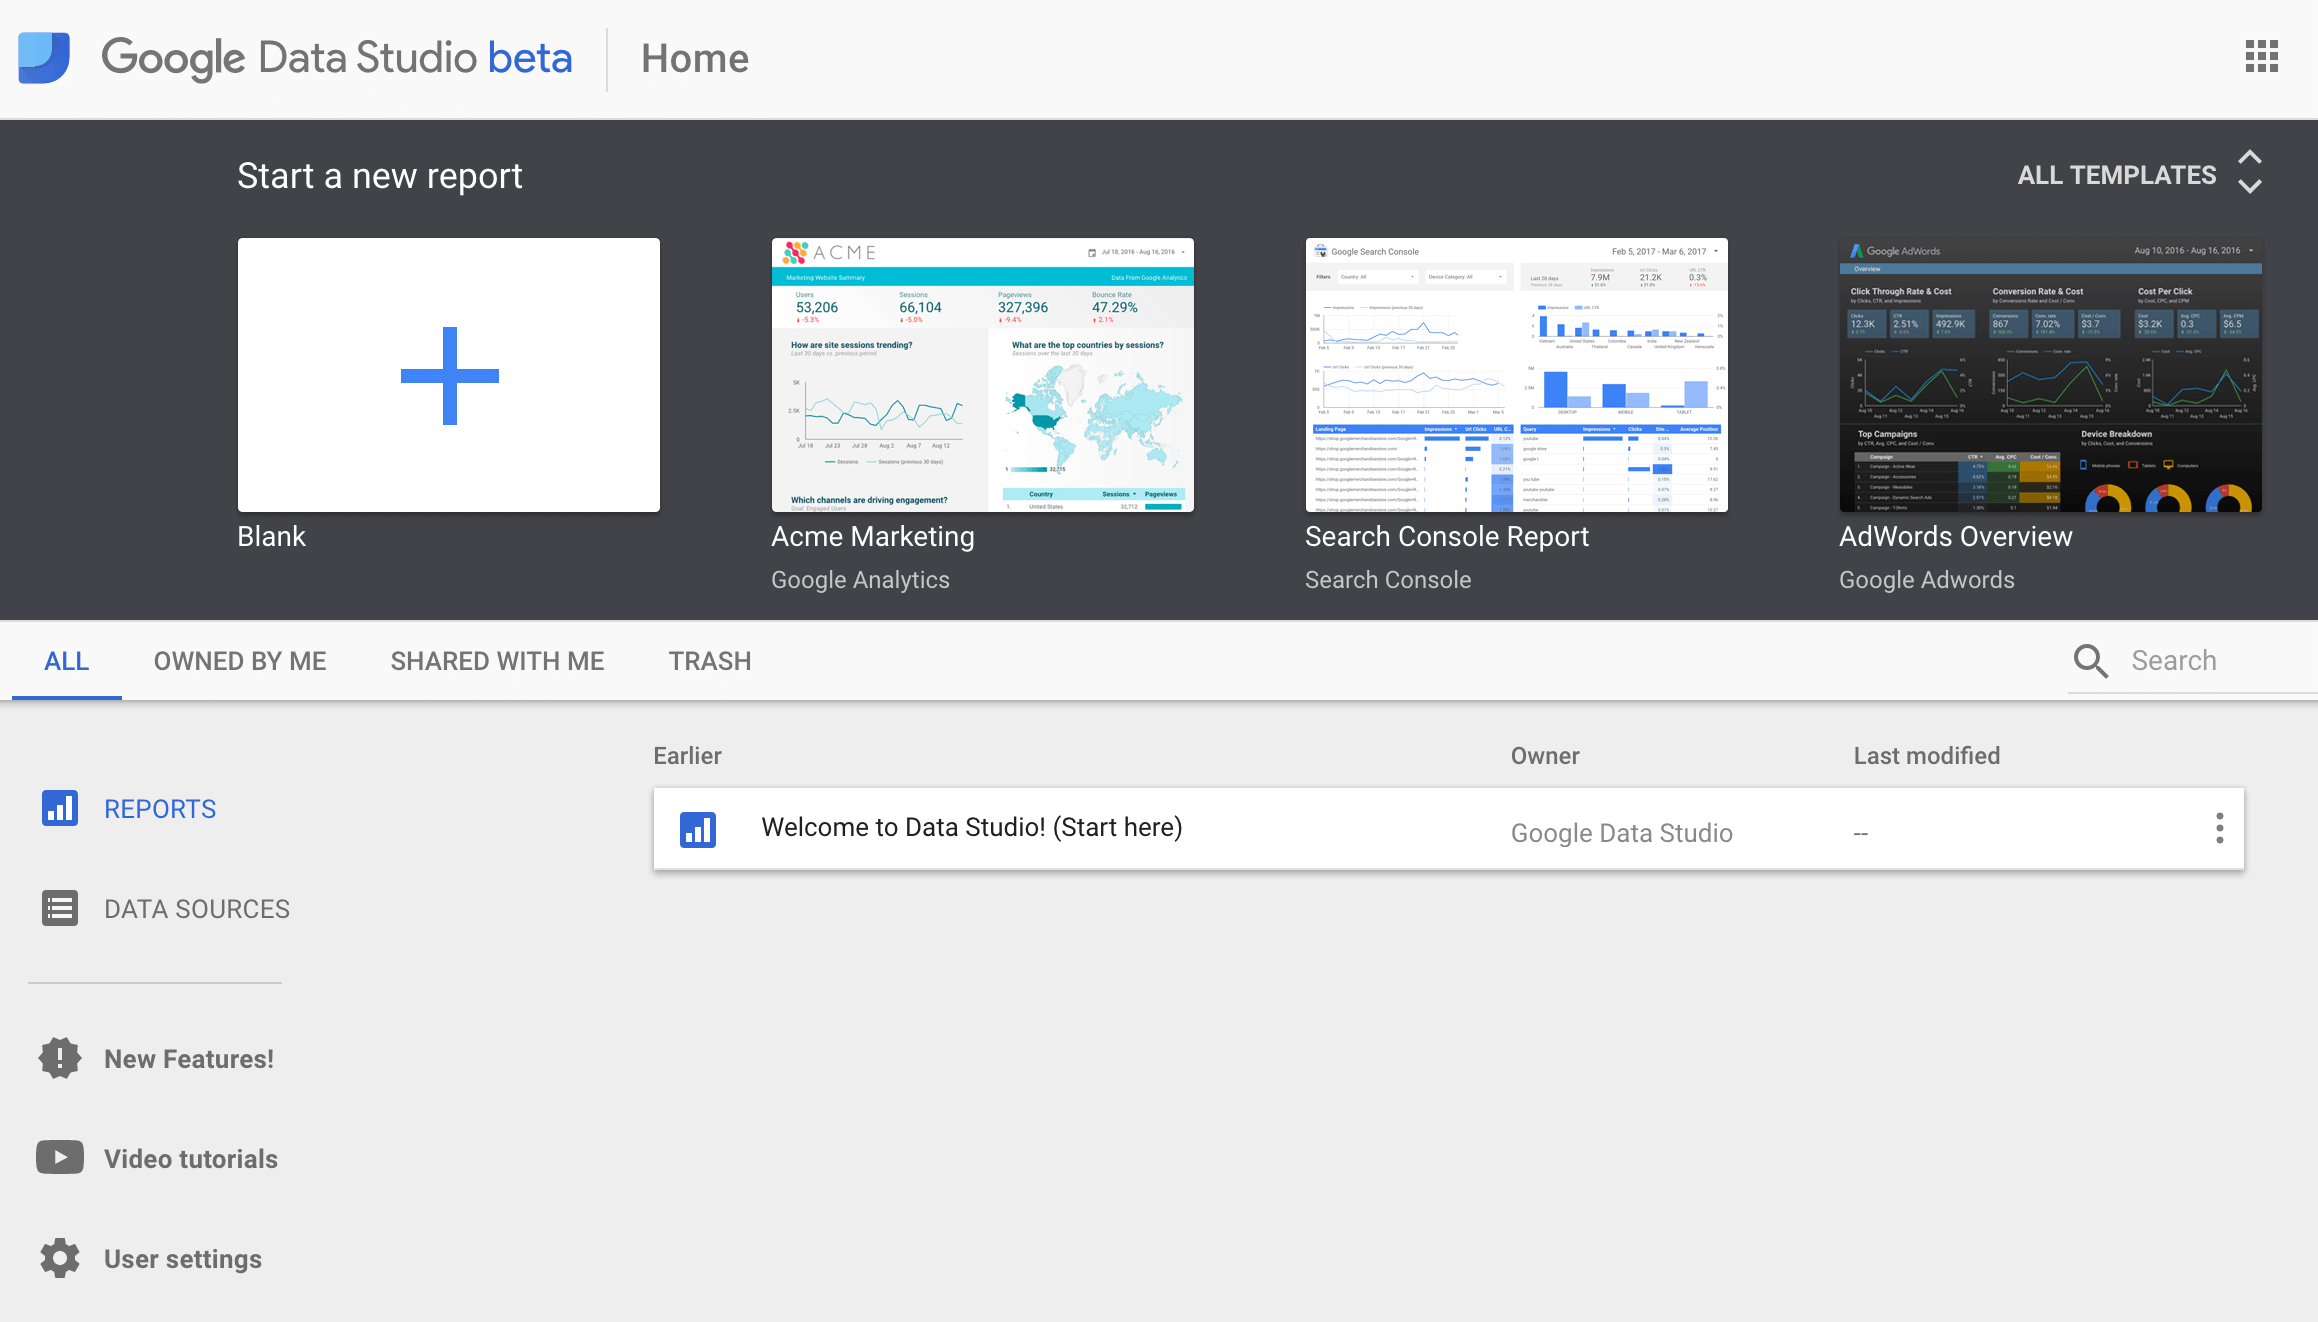 templates in Google Data Studio